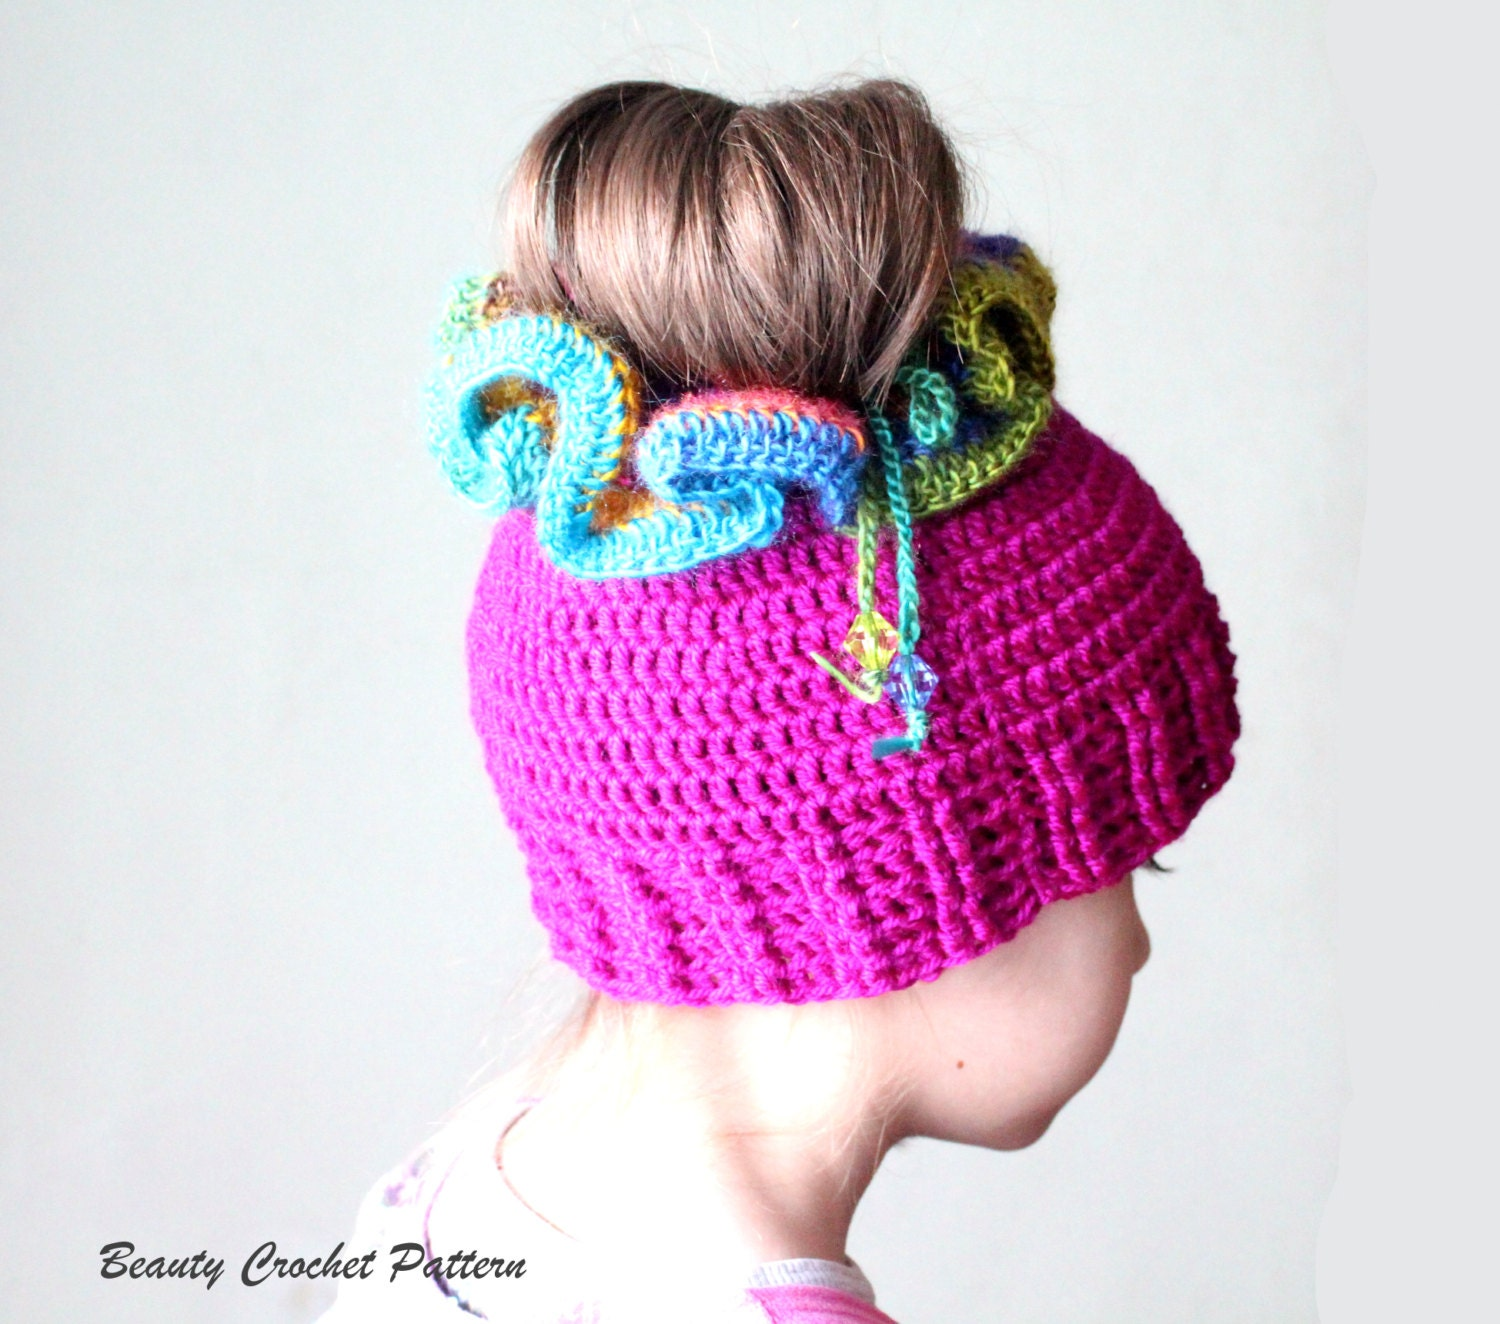 Crochet Bun Hat : Messy Bun Crochet Hat Pattern Crochet by BeautyCrochetPattern